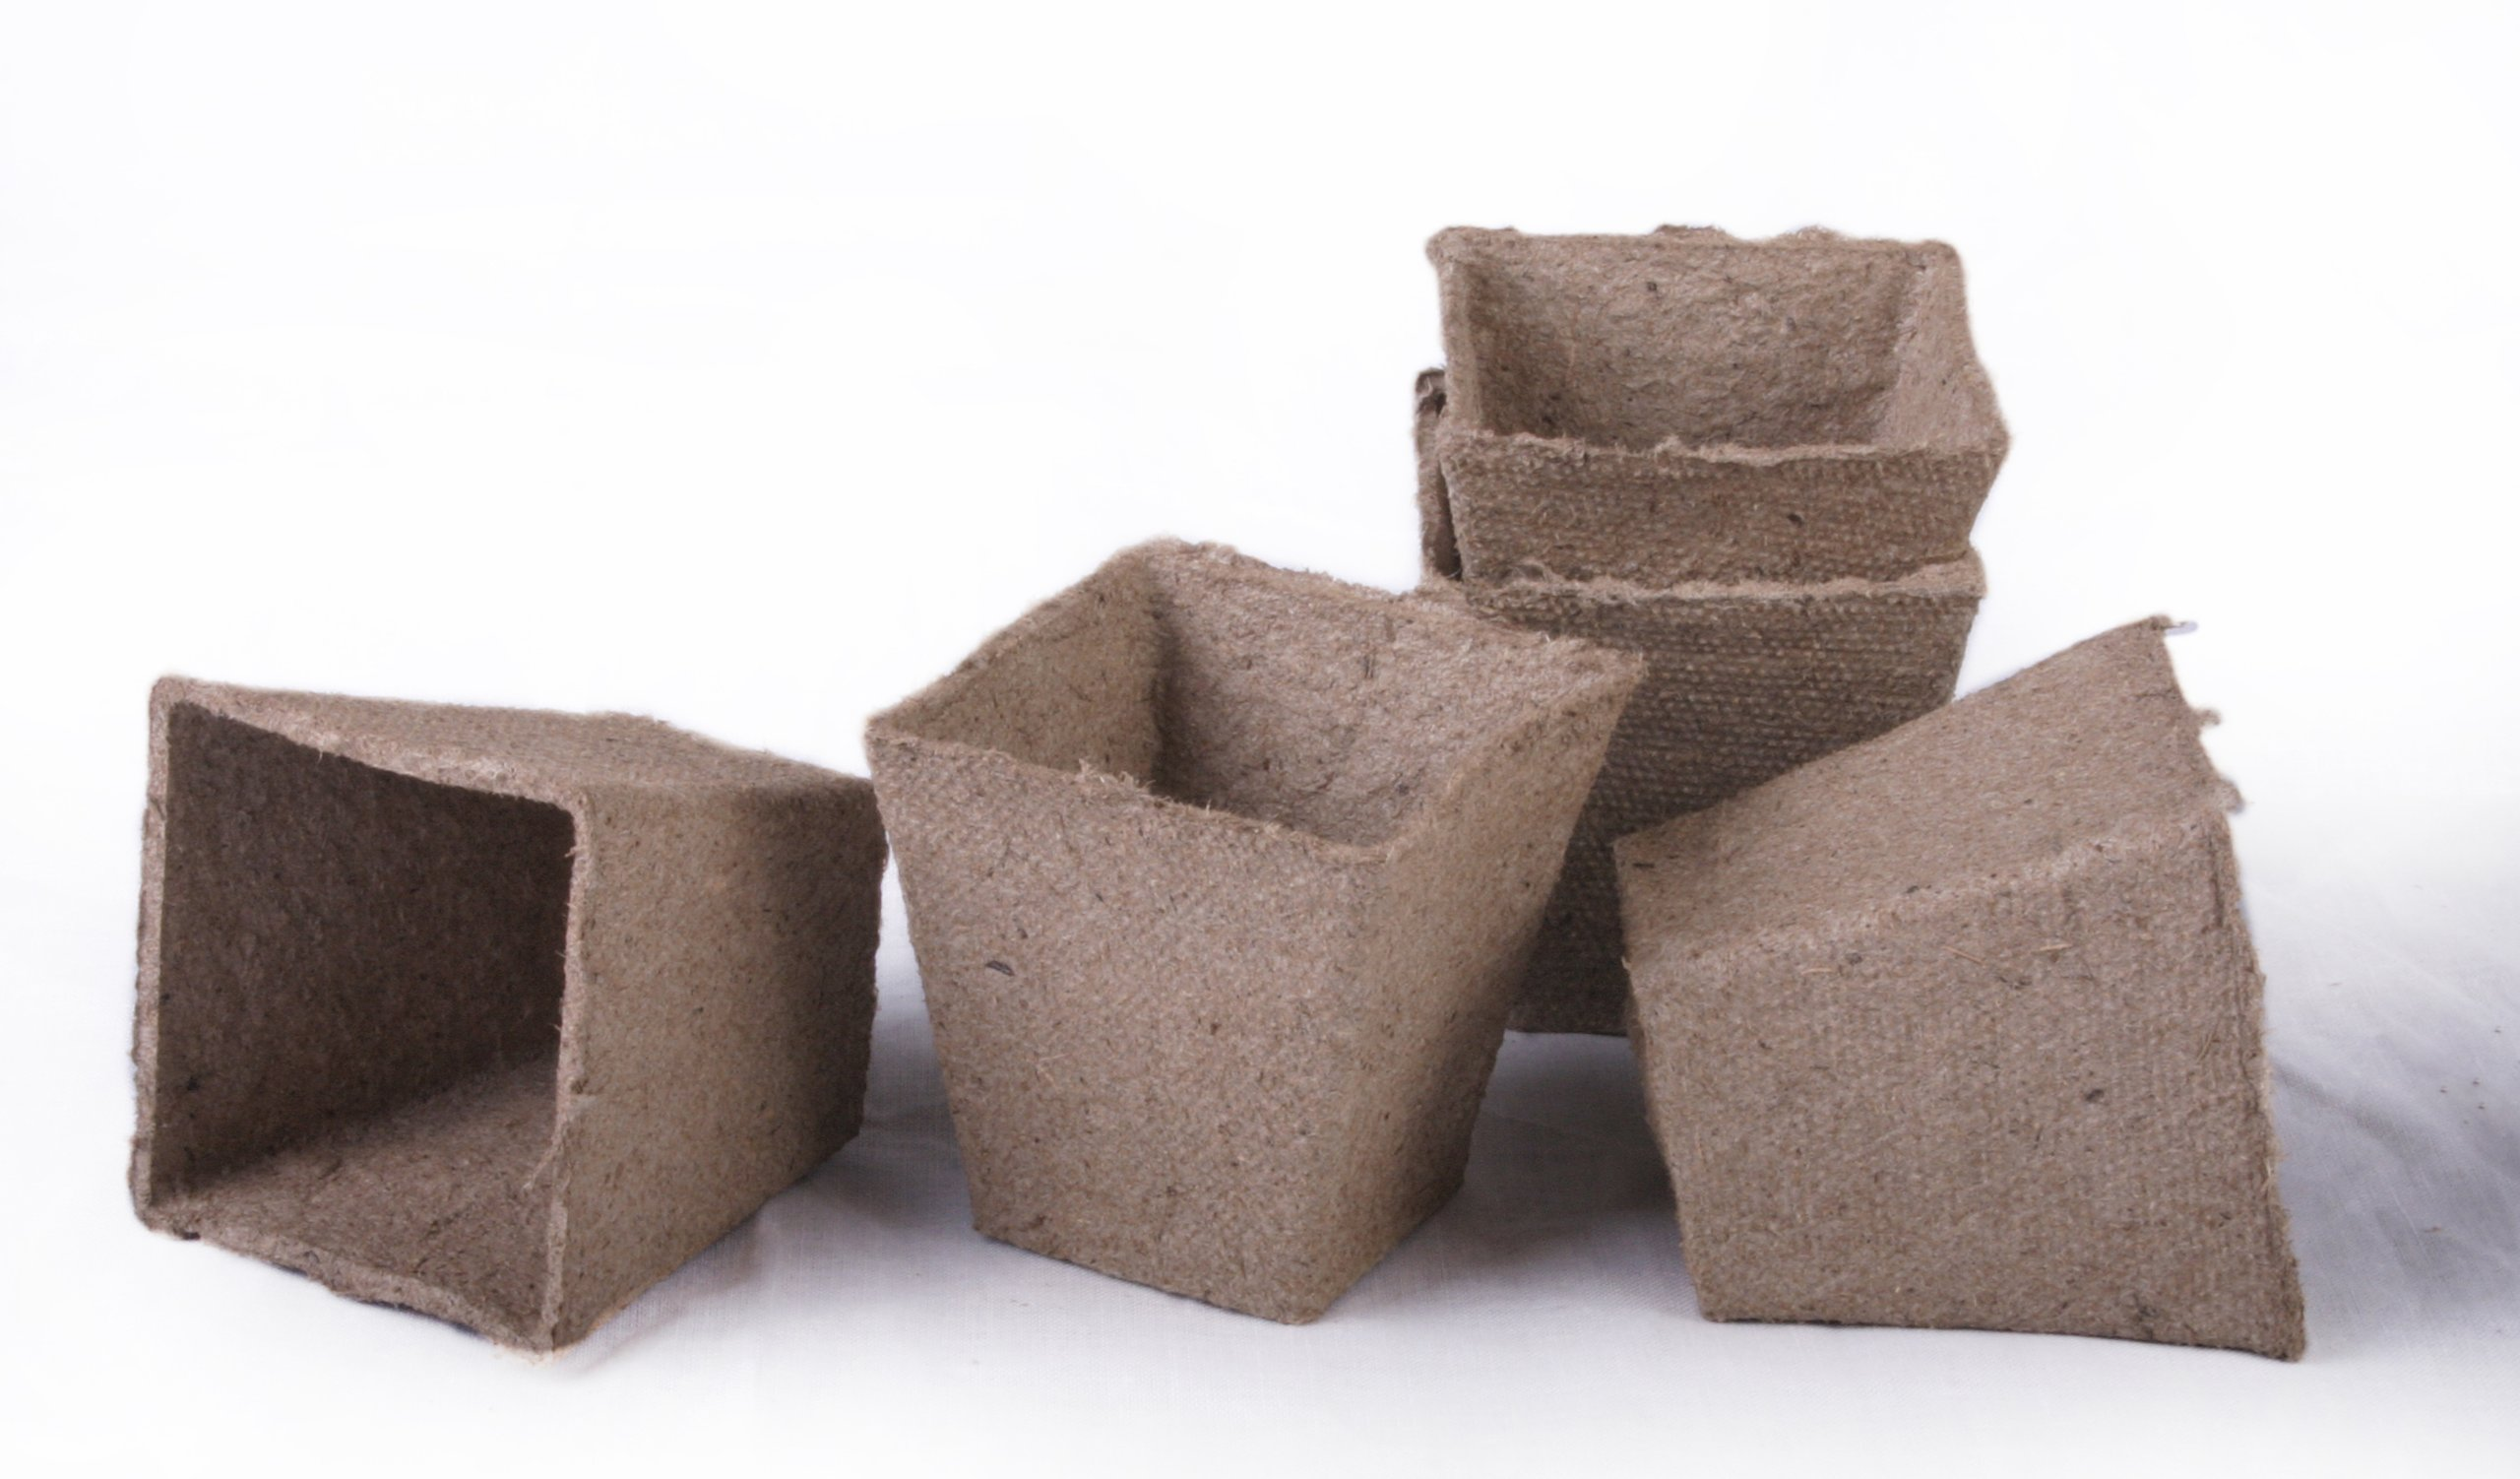 100 NEW Square Jiffy Peat Pots Size 3x3 ~ Pots Are 3 Inch Square At the Top and 3 Inch Deep.